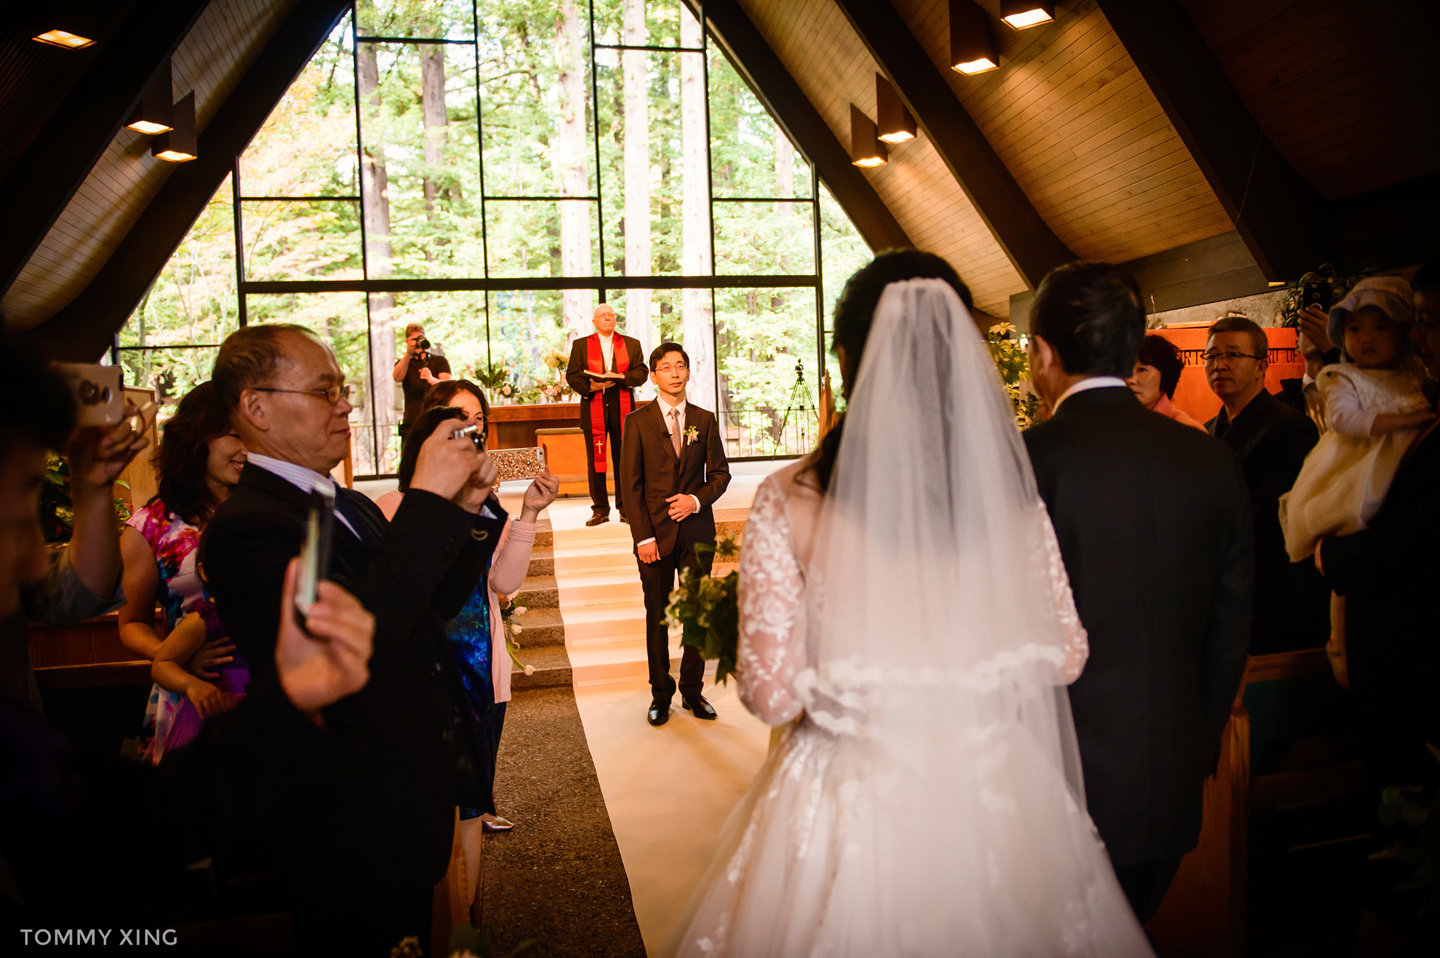 San Francisco Wedding Photography Valley Presbyterian Church WEDDING Tommy Xing Photography 洛杉矶旧金山婚礼婚纱照摄影师068.jpg